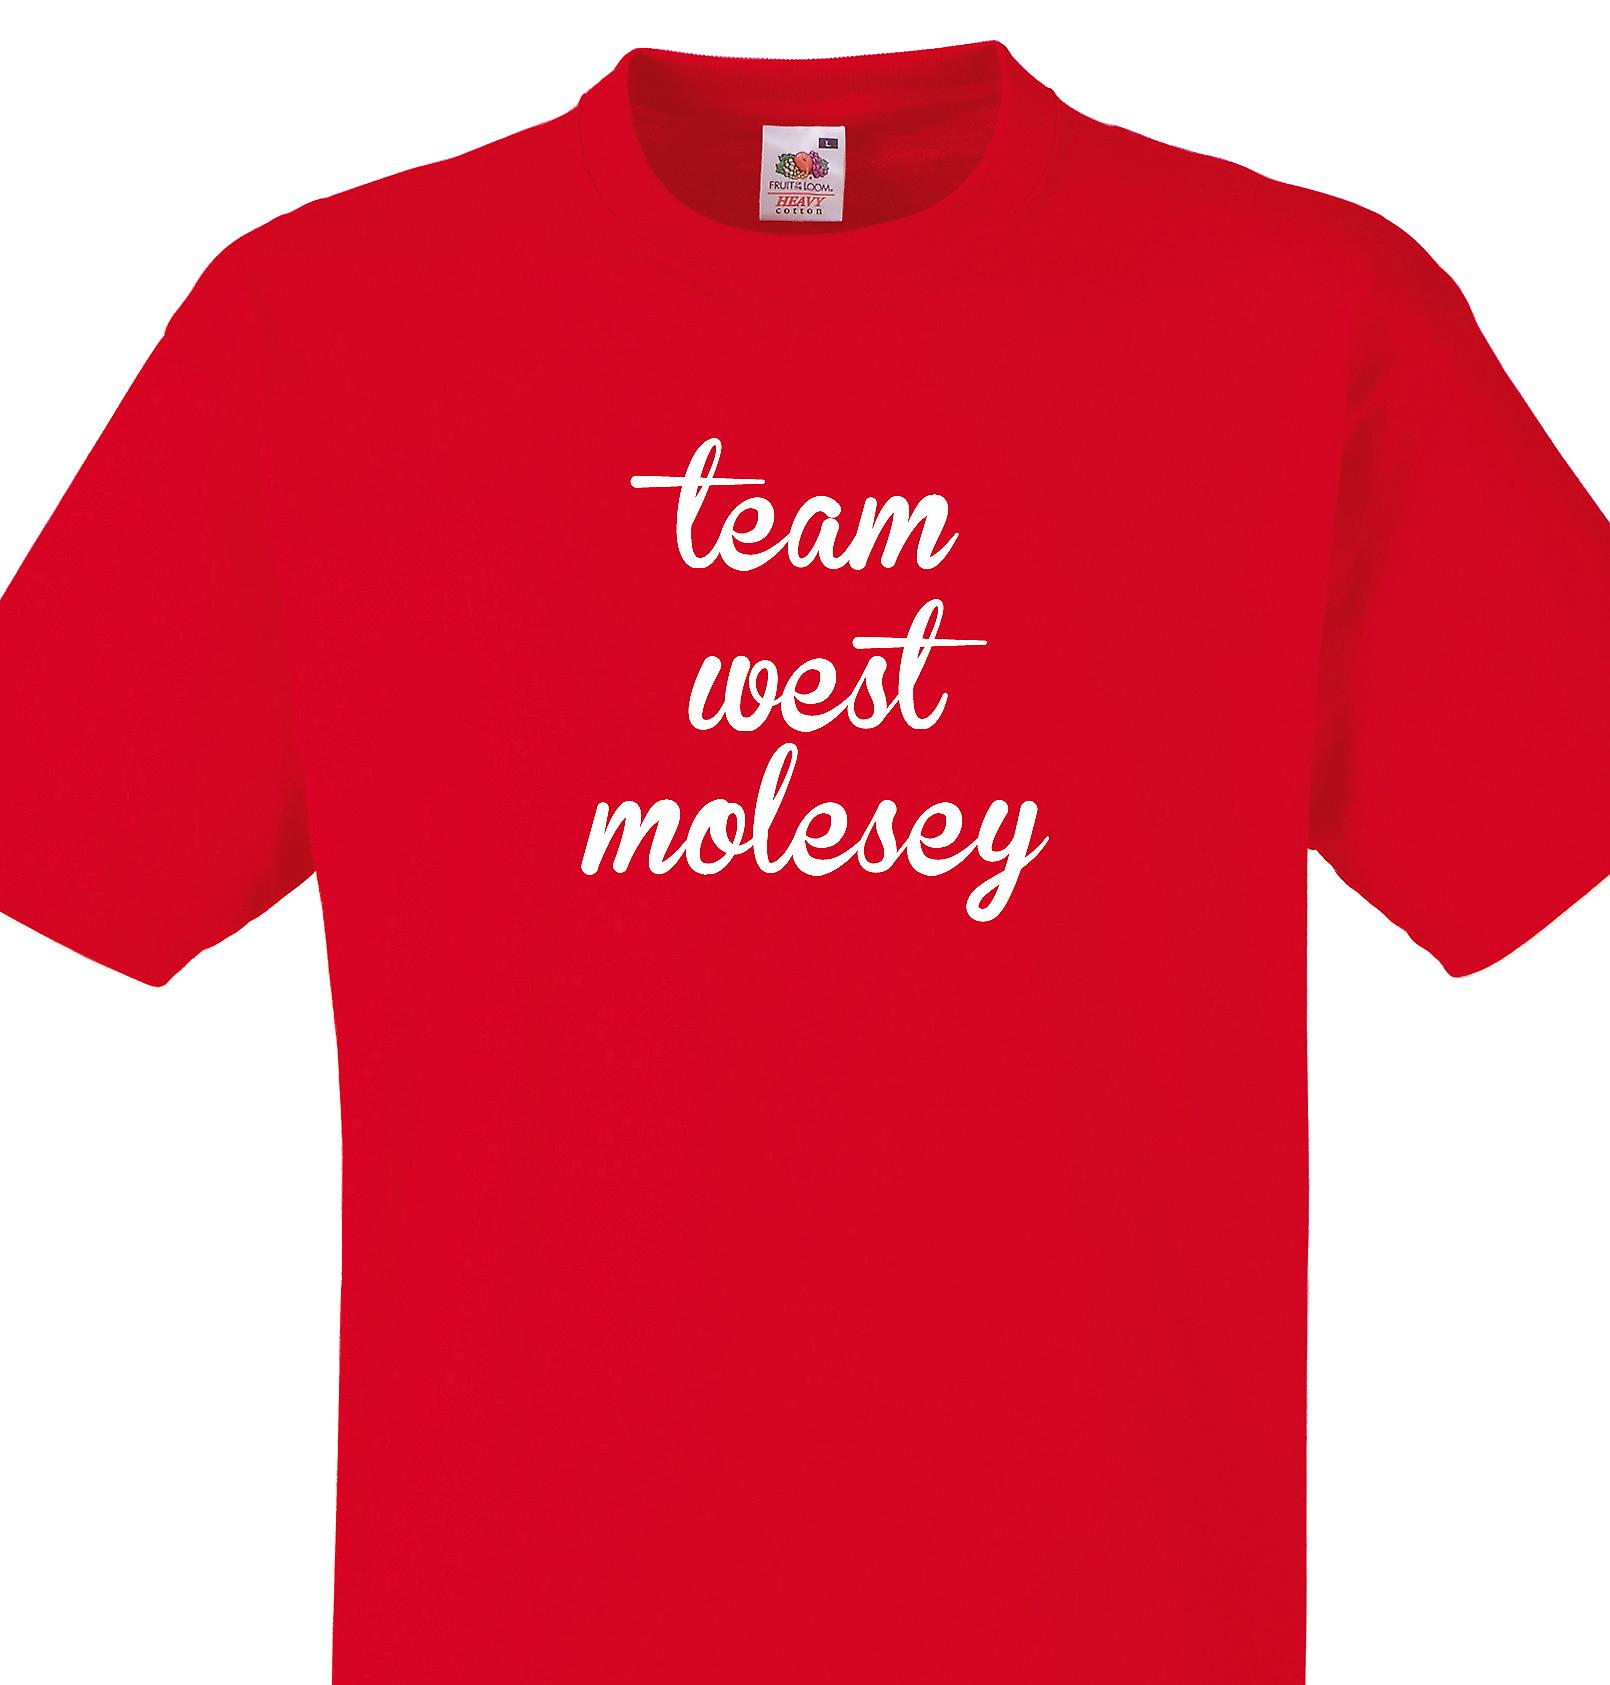 Team West molesey Red T shirt